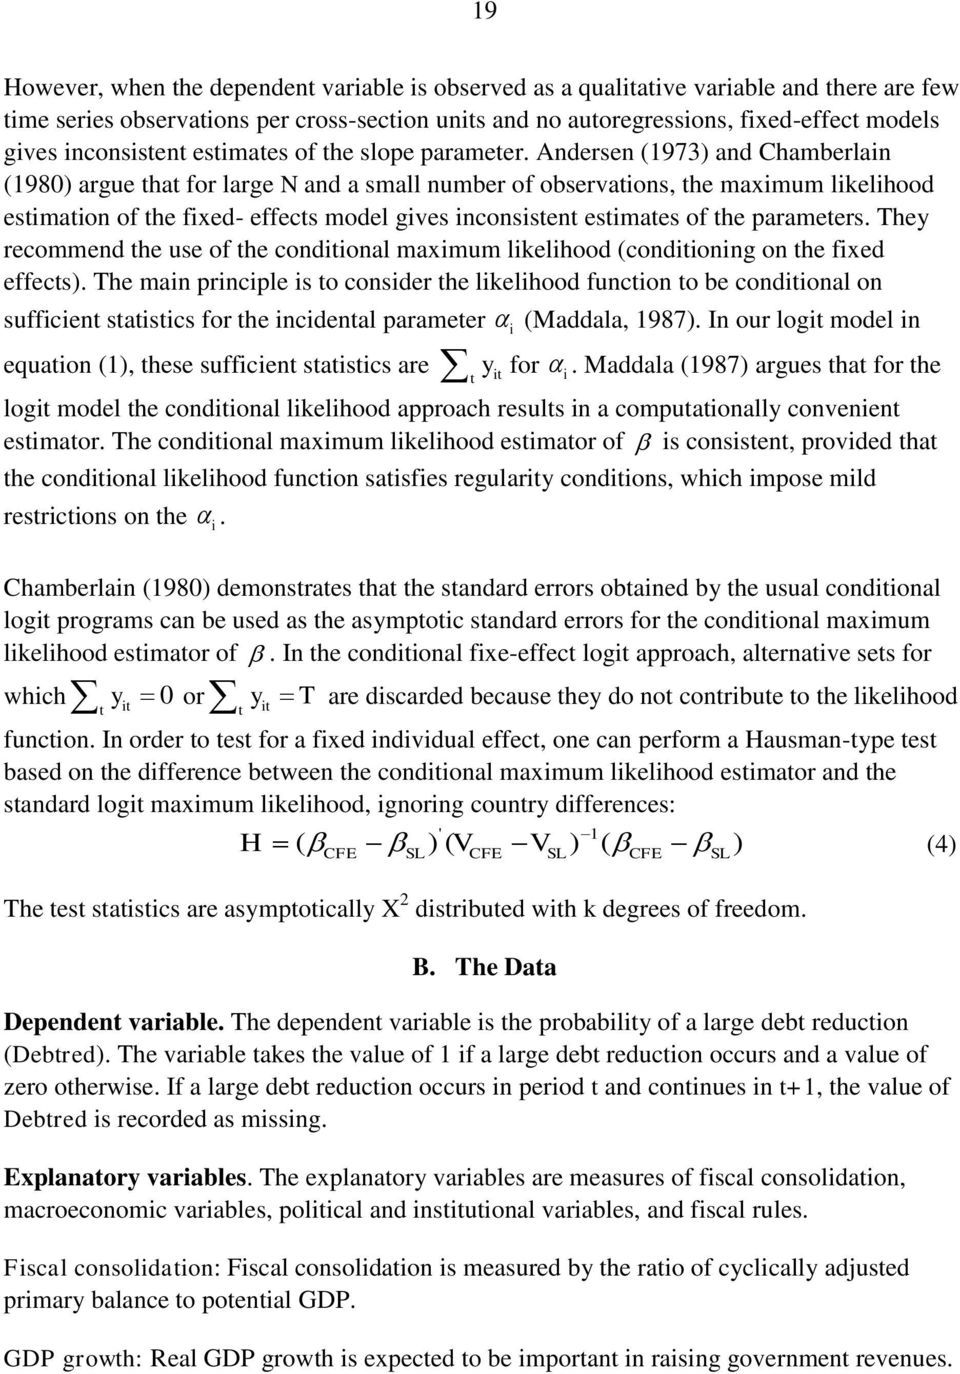 Andersen (1973) and Chamberlain (1980) argue that for large N and a small number of observations, the maximum likelihood estimation of the fixed- effects model gives inconsistent estimates of the